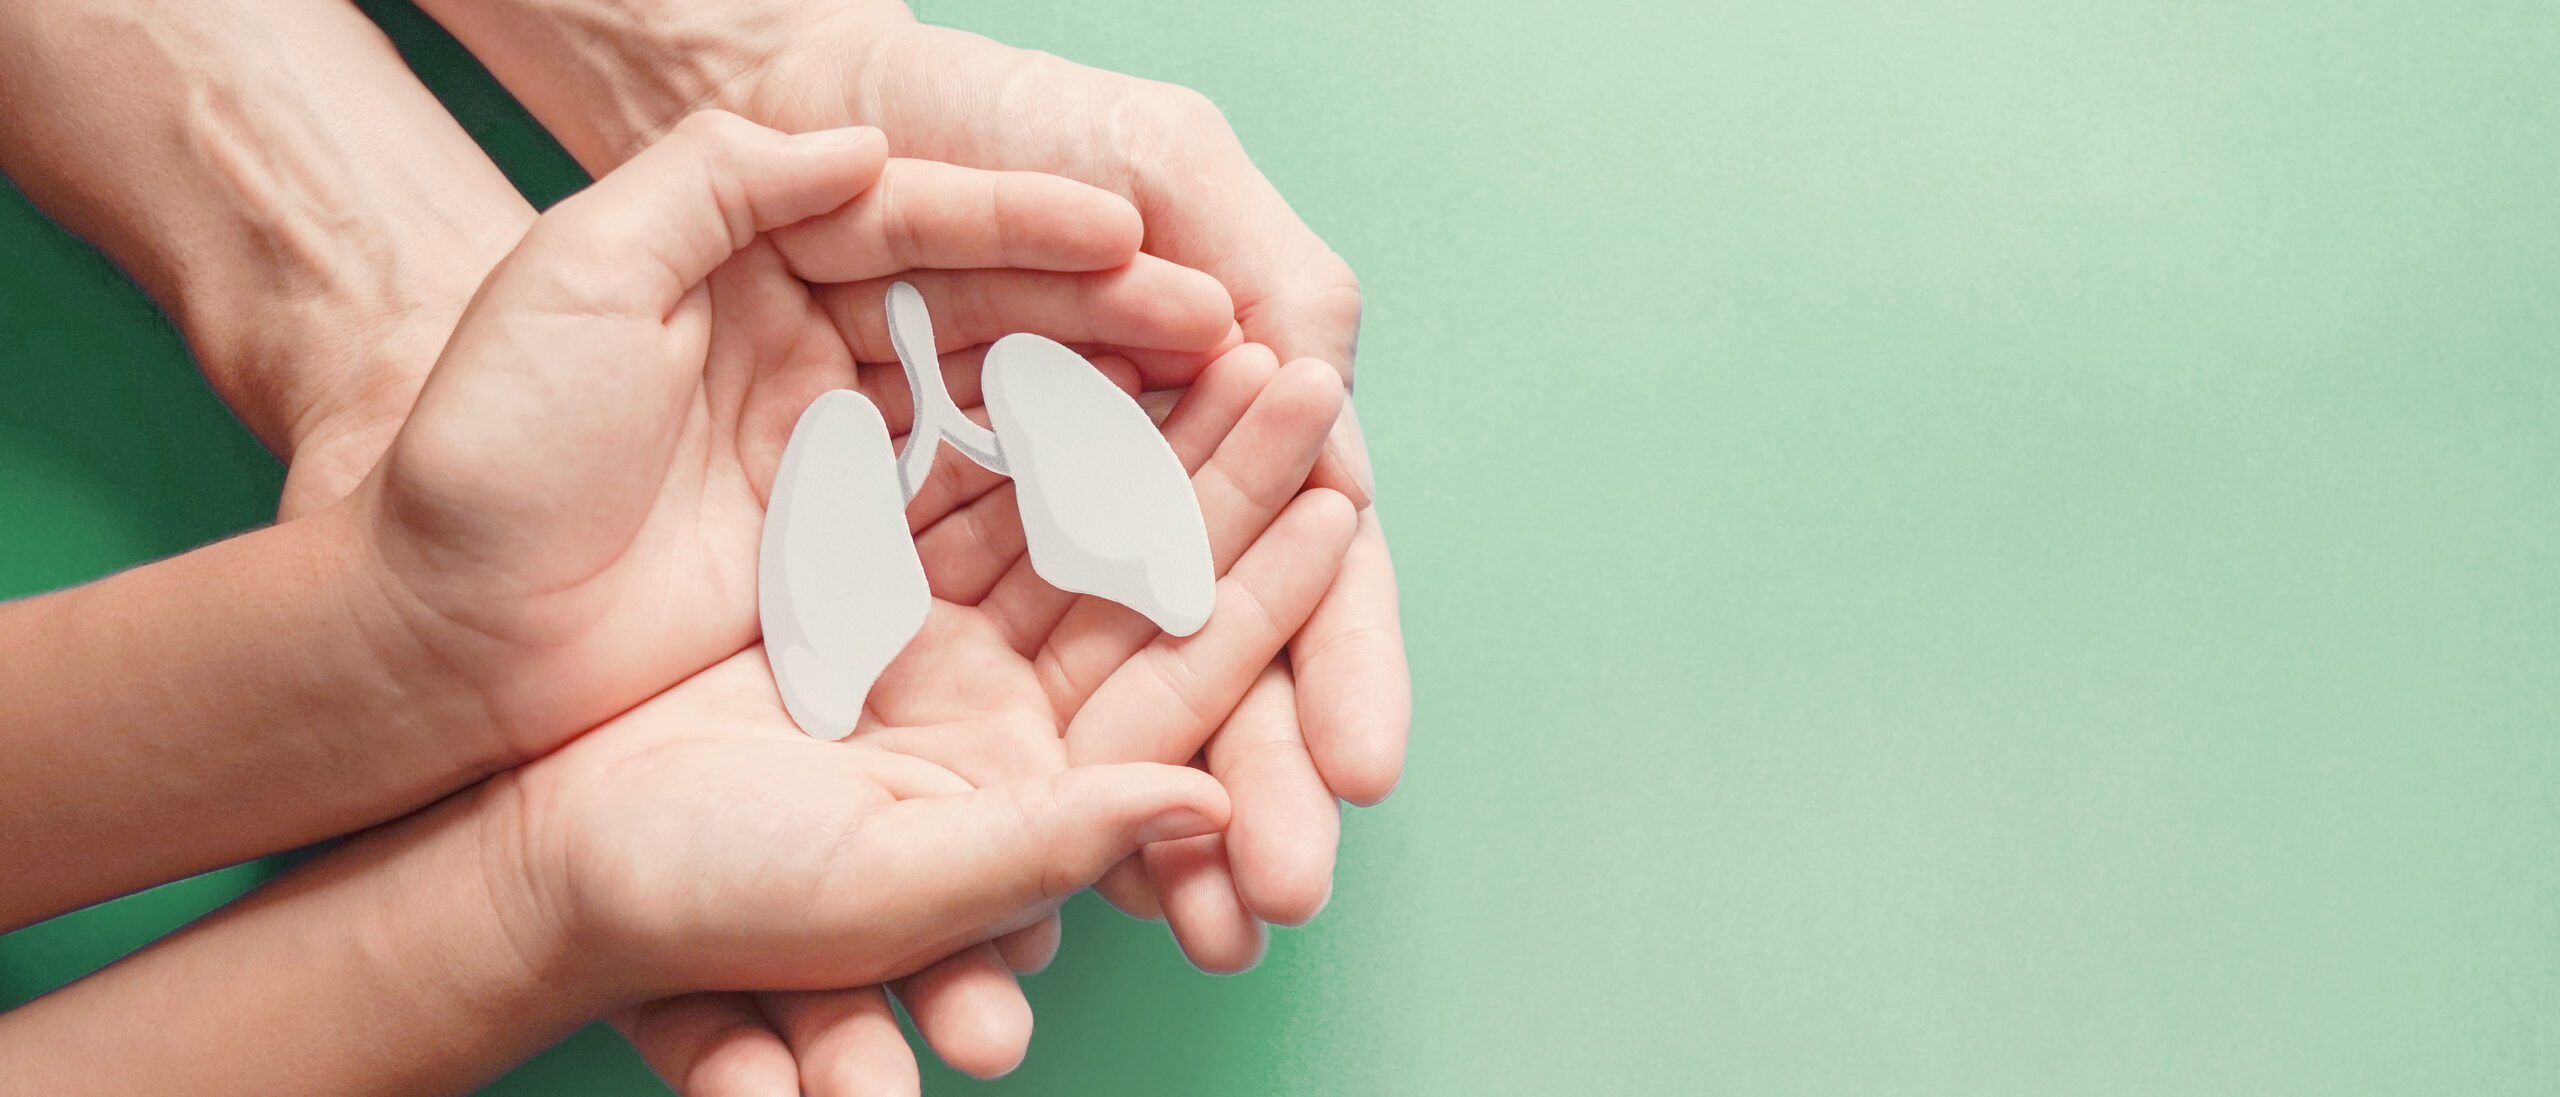 Adult and child hands holding a small replica of lungs to represent Chronic Lung Disease